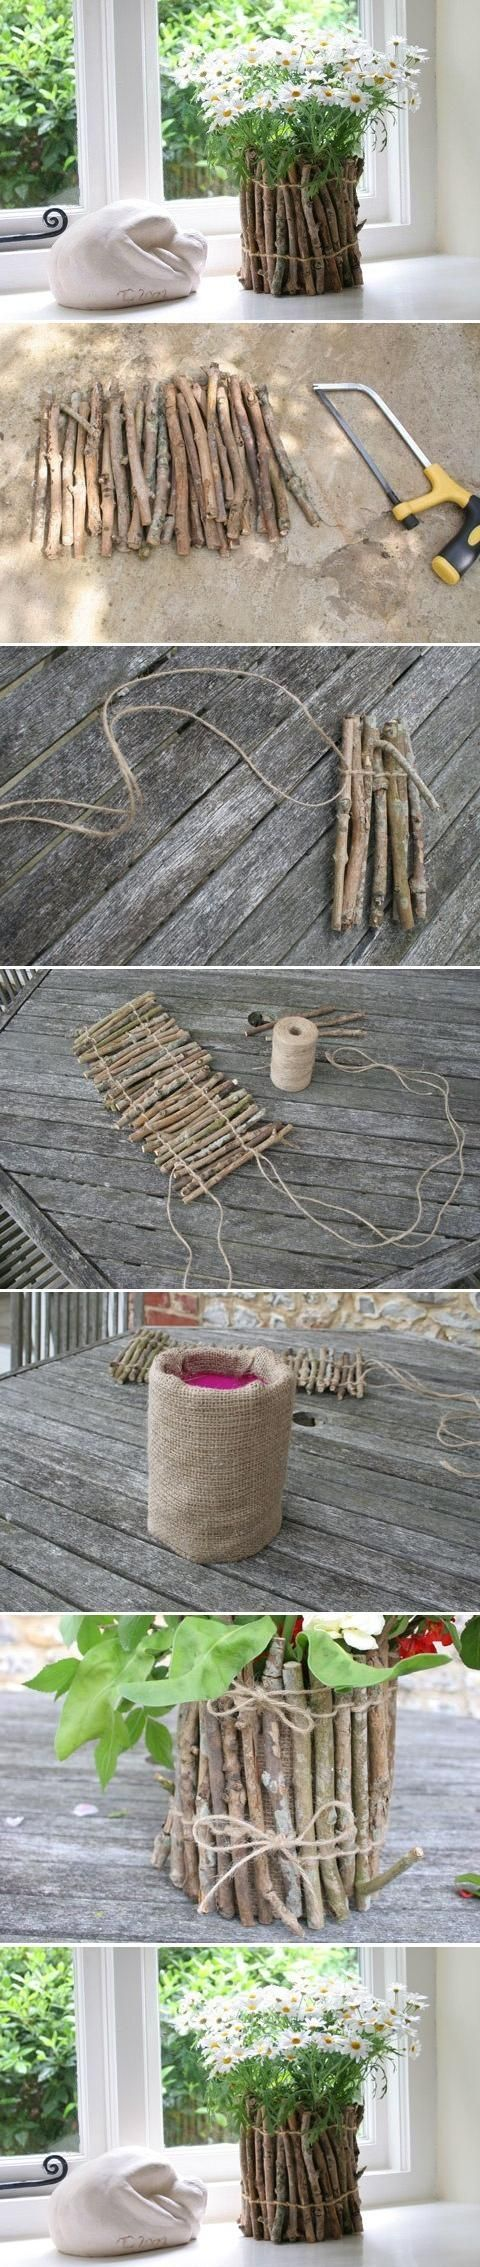 DIY Tree Branches Flower Pot Pictures, Photos, and Images for Facebook, Tumblr…